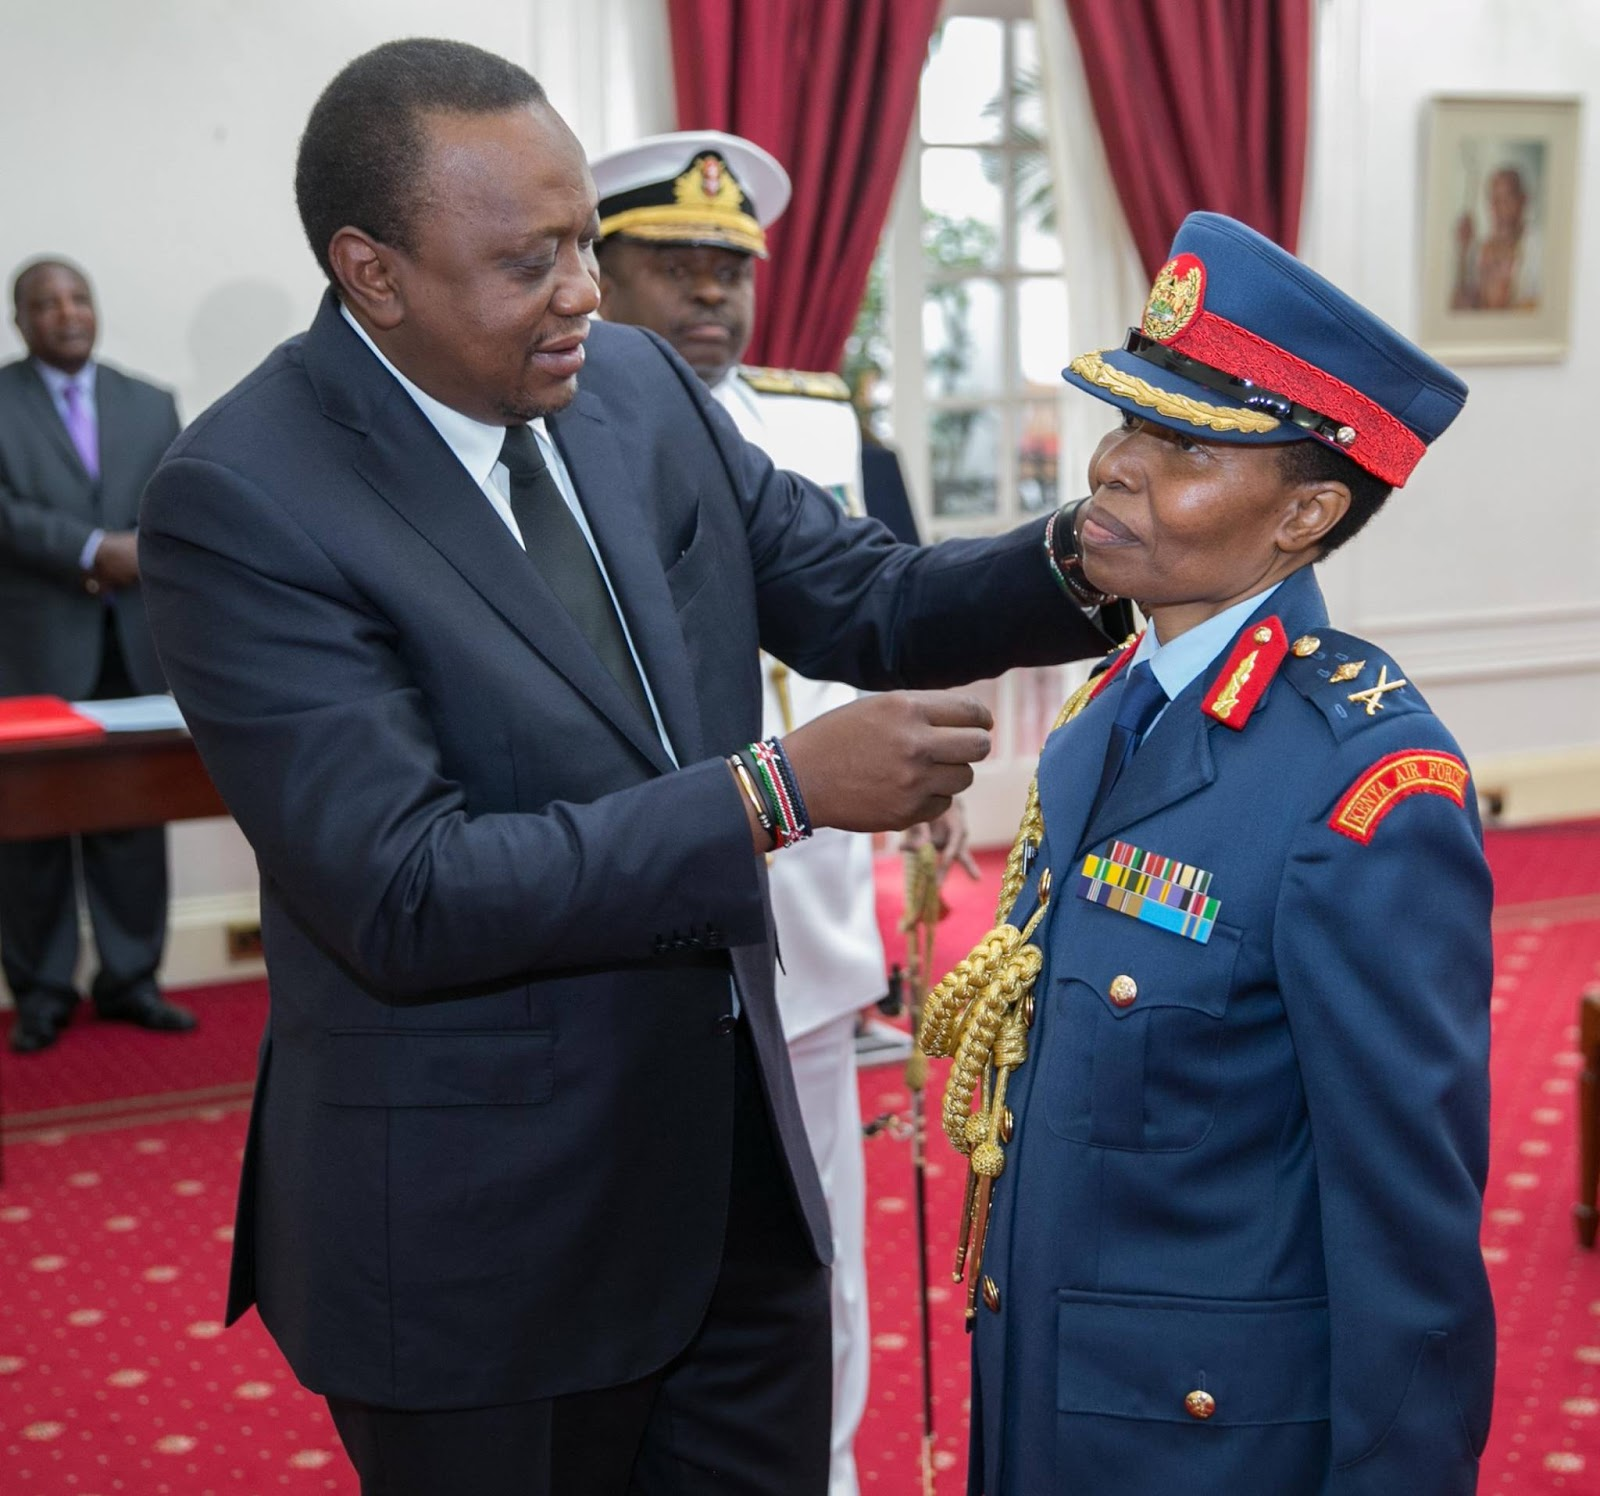 FIRST KENYAN WOMAN APPOINTED MAJOR GENERAL, AS NEW KDF